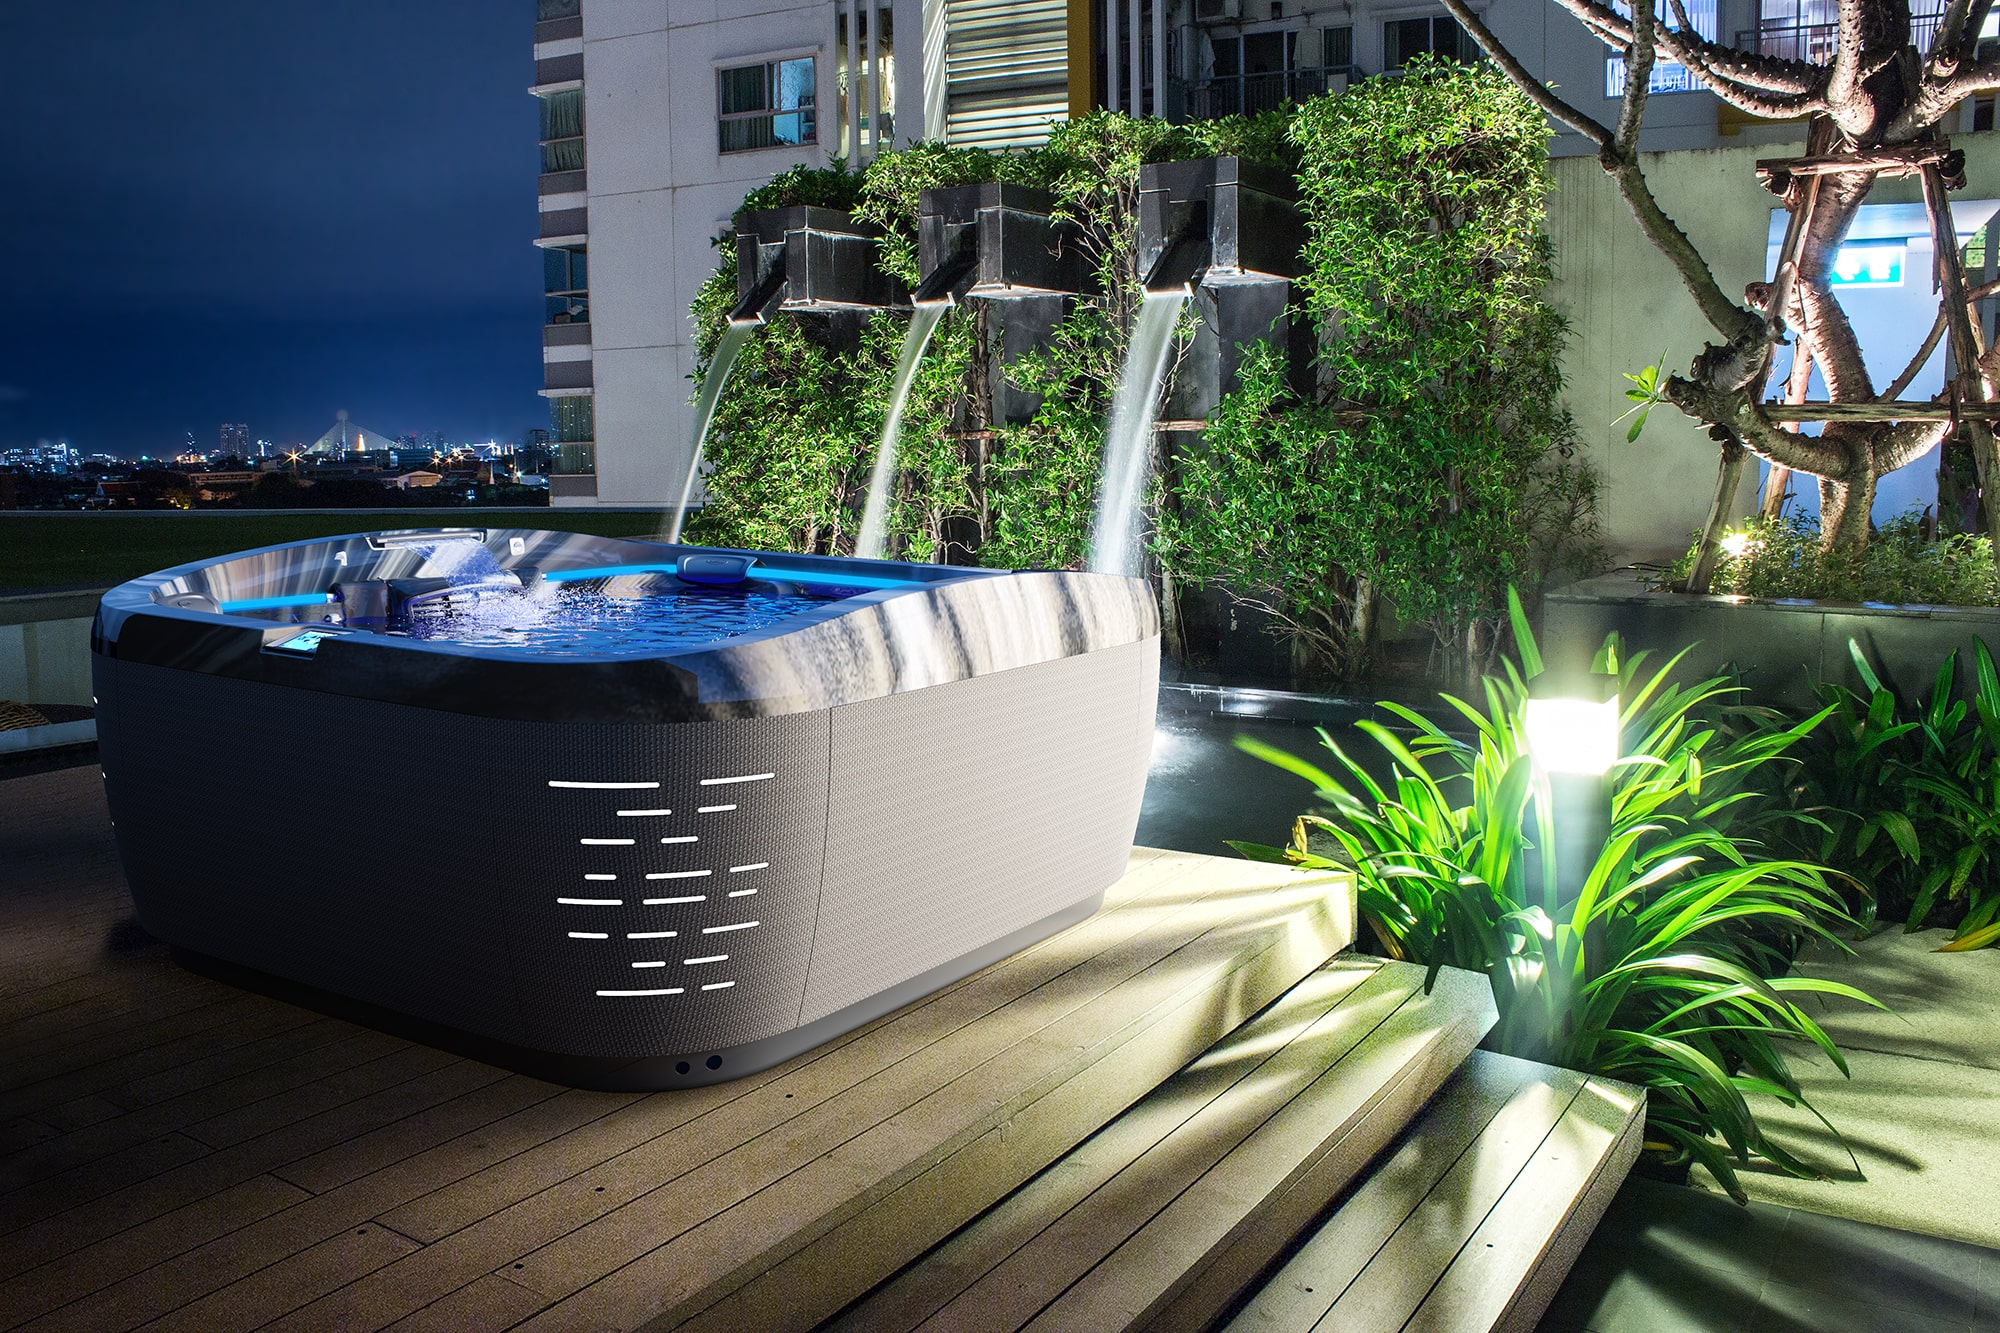 J-575 Jacuzzi Hot Tub installation at night with water falls